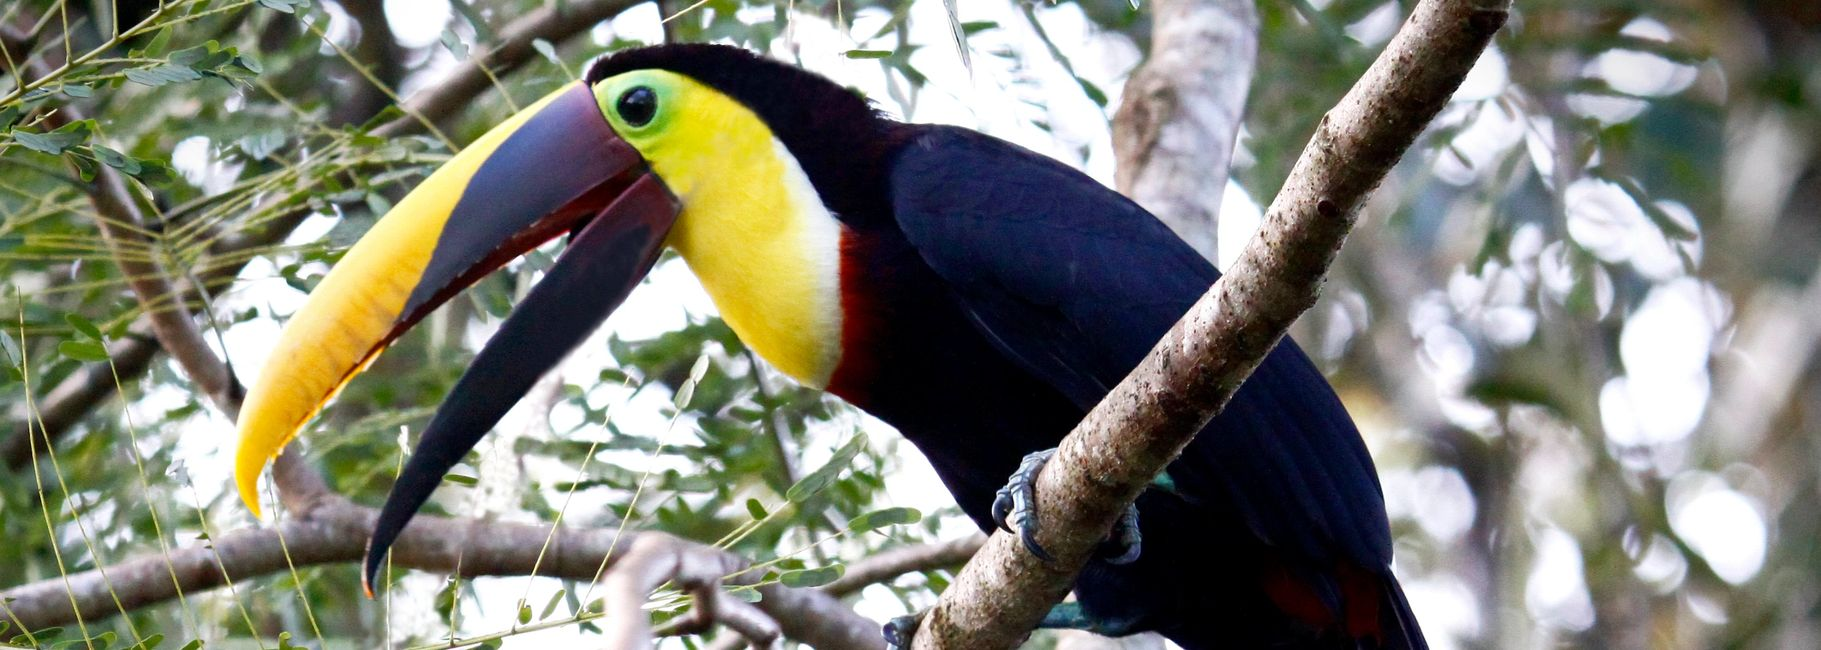 chestnut mandibled toucan for sale florida